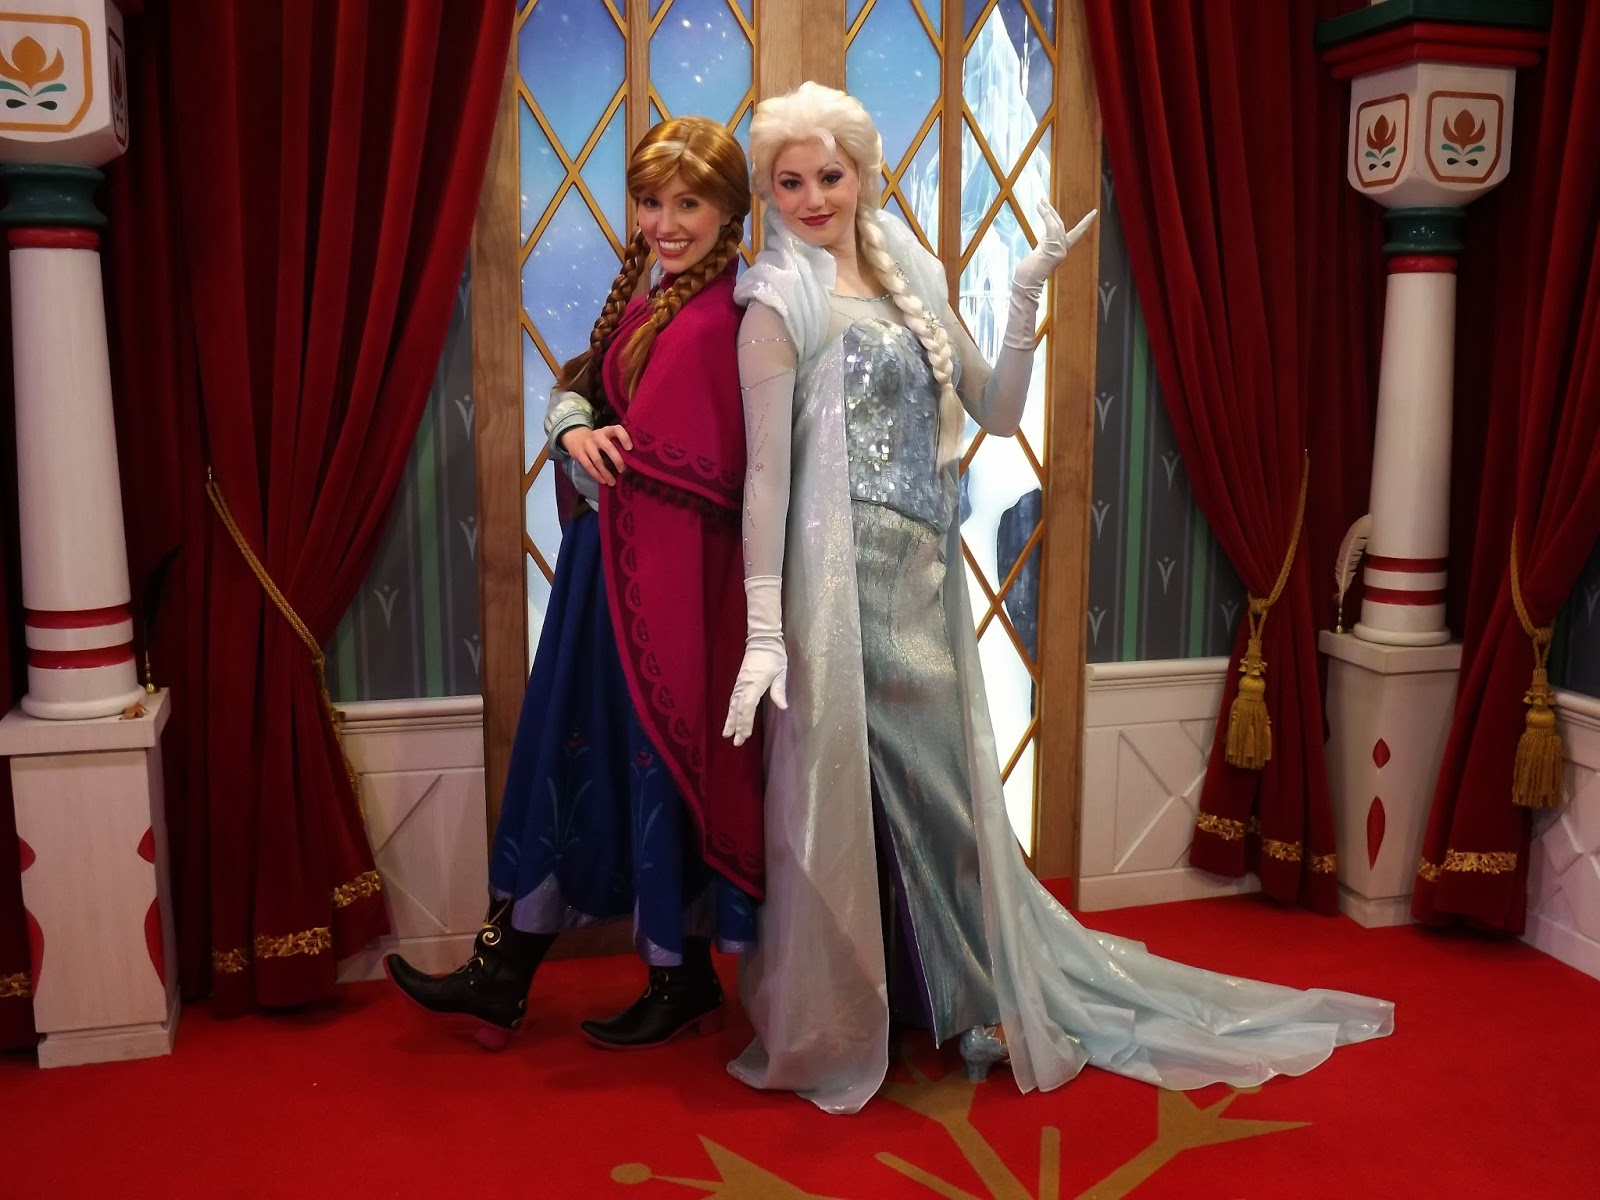 A Disney Girl In Orlando Frozen Meet And Greet With Anna Elsa In